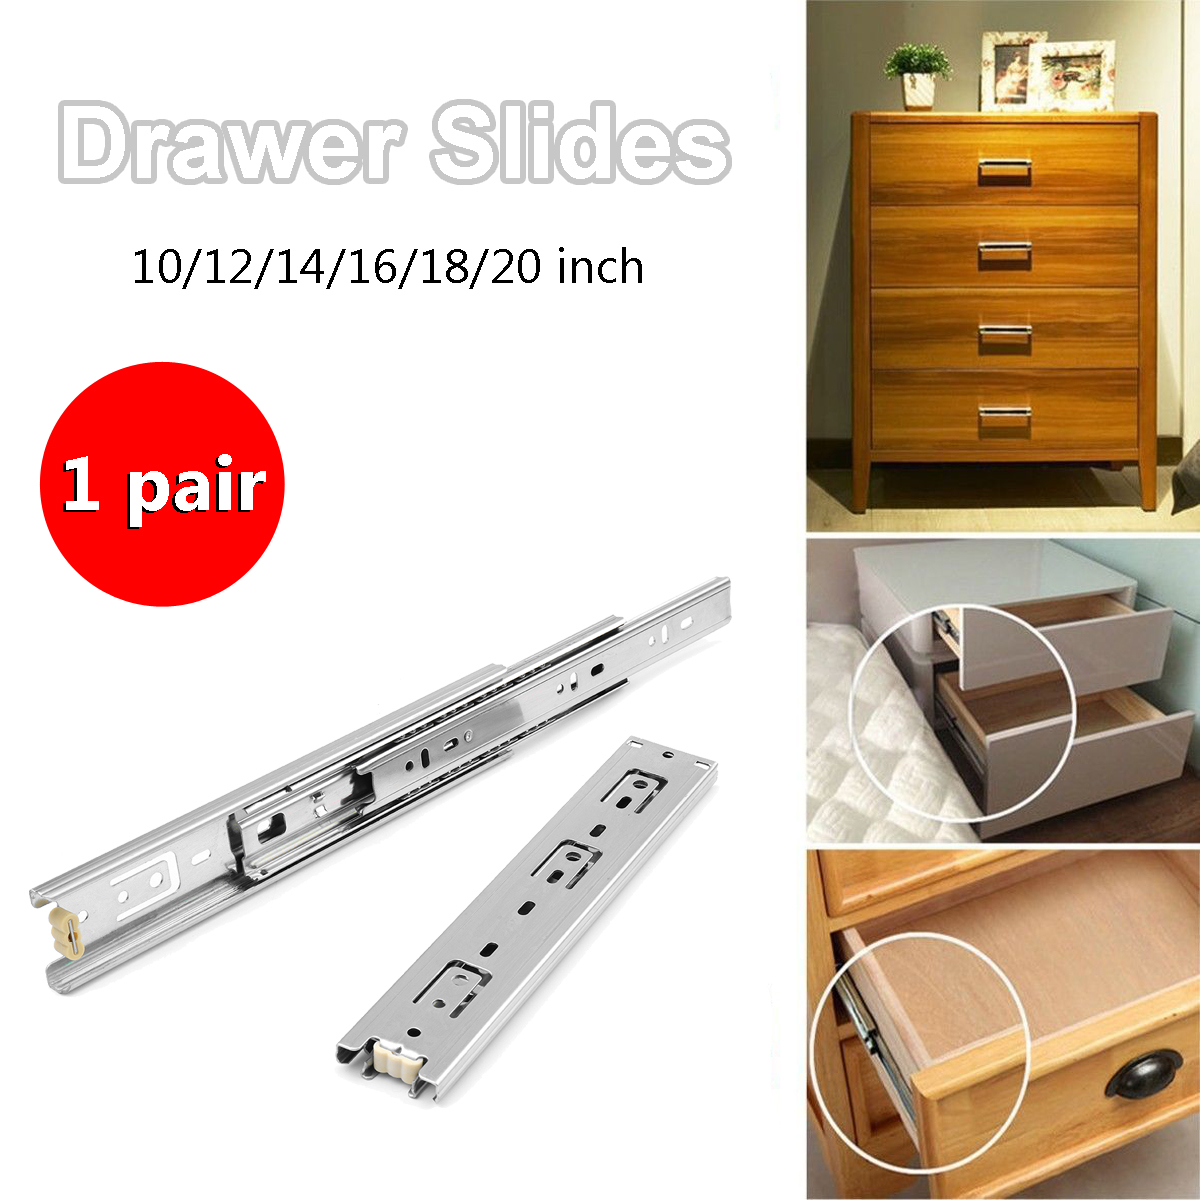 2Pcs 10-24 Keyboard Cabinet Cupboard Drawer Runners Ball Bearing Drawer Slides Furniture Slide Steel Ball Bearing Slides2Pcs 10-24 Keyboard Cabinet Cupboard Drawer Runners Ball Bearing Drawer Slides Furniture Slide Steel Ball Bearing Slides